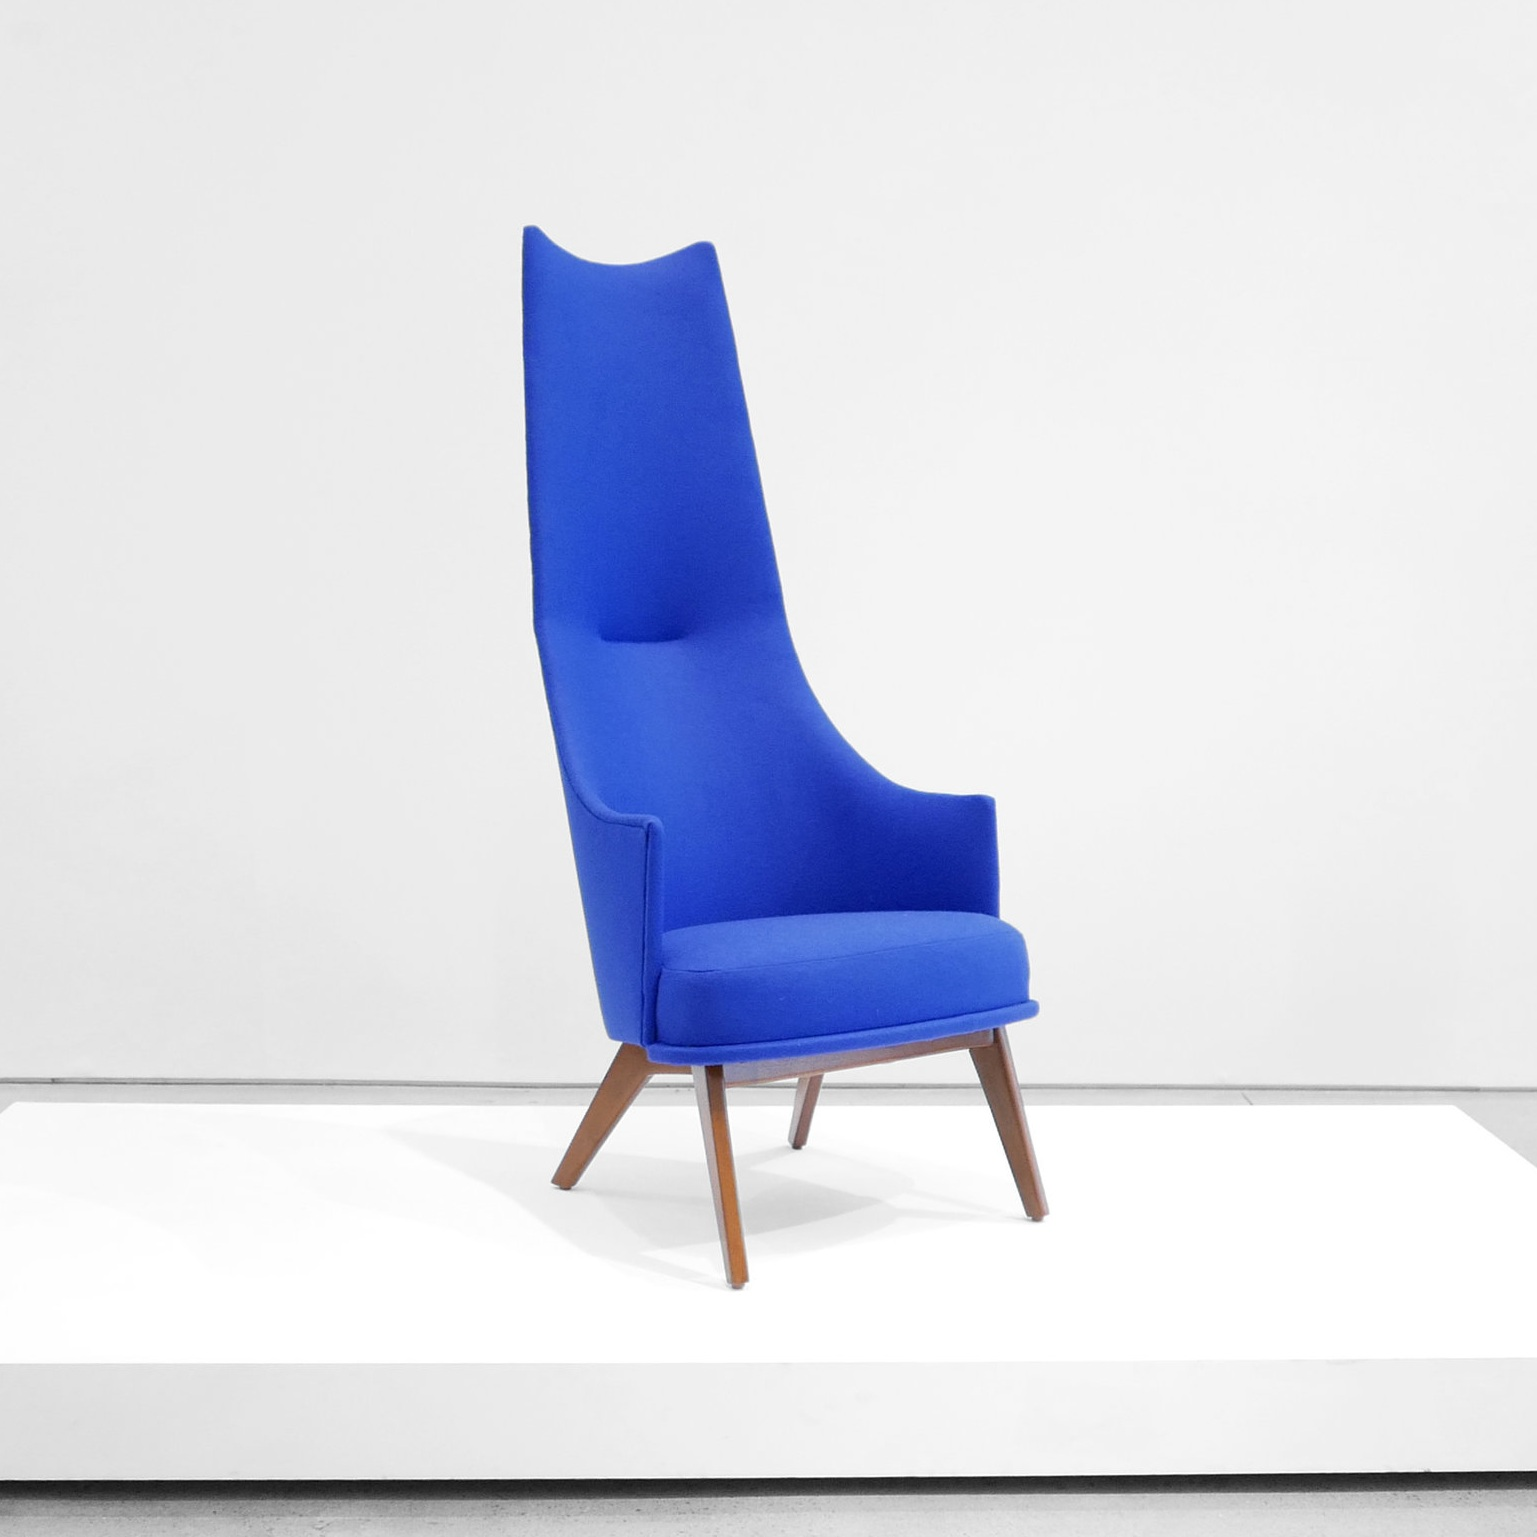 adrian pearsell 'throne' chair sold